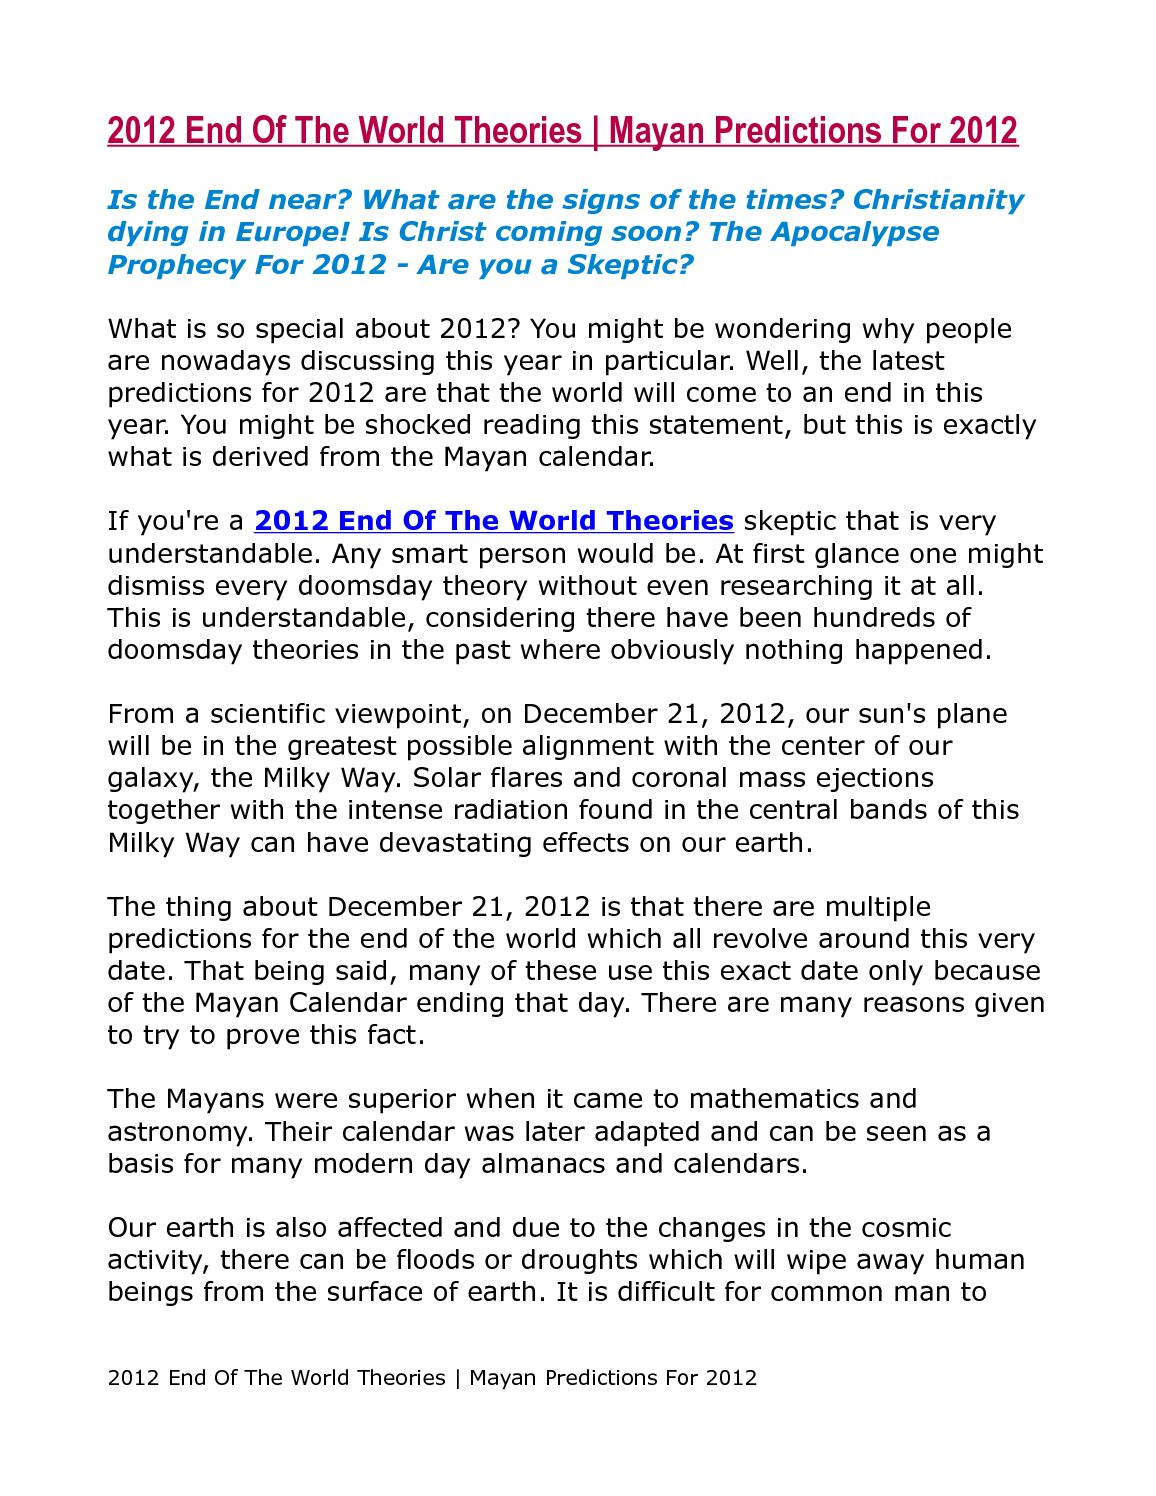 Calaméo - 2012 End Of The World Theories | Mayan Predictions For 2012